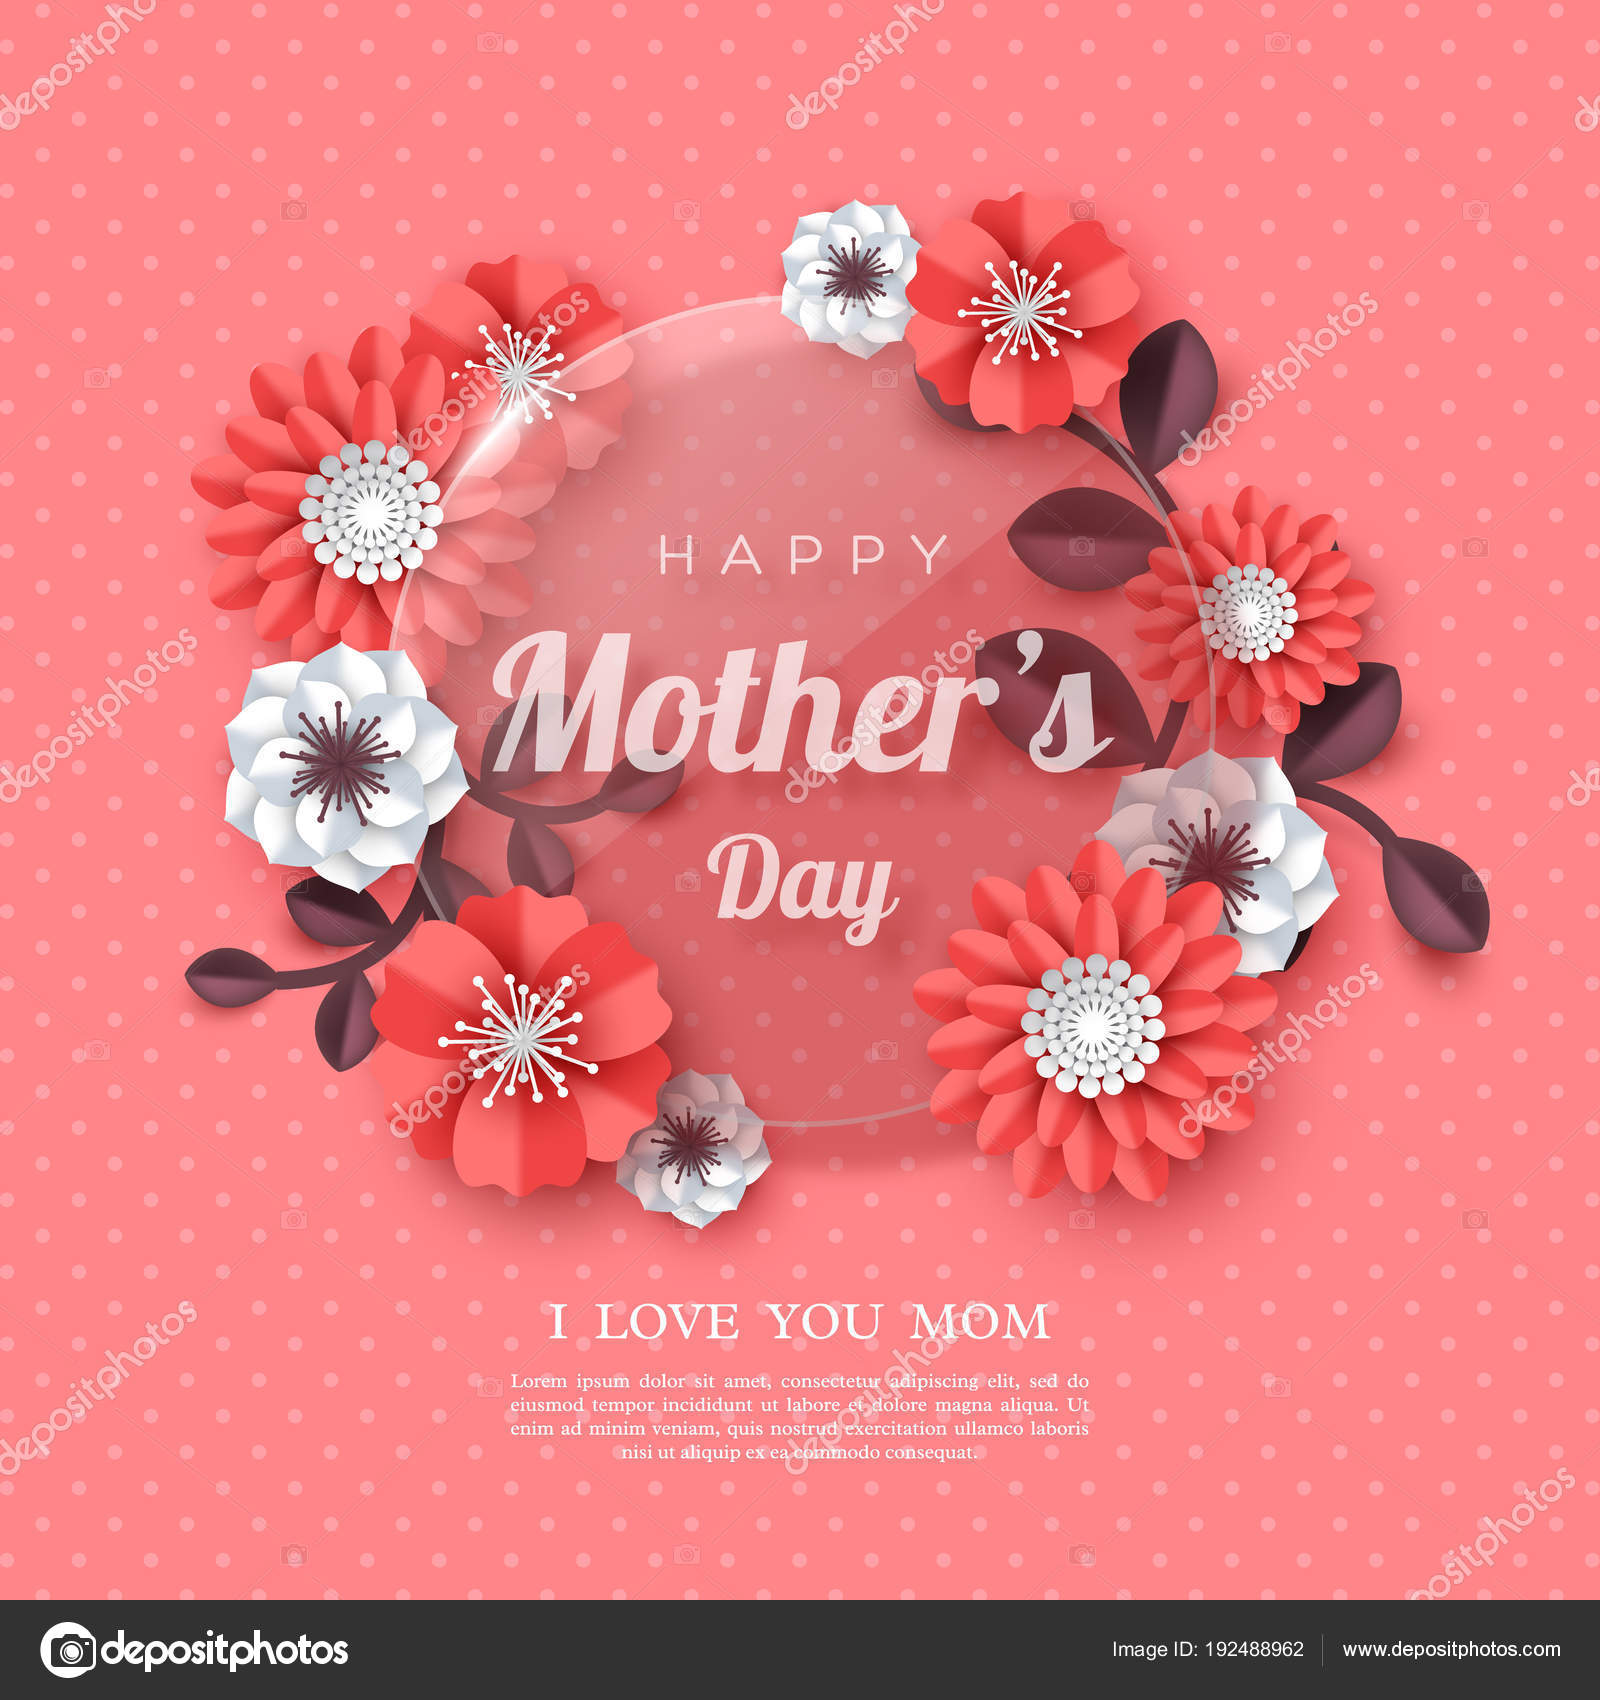 Happy mothers day greeting card stock vector ludasikm79ail happy mothers day greeting card paper cut flowers with glossy banner holiday background vector illustration vector by ludasikm79ail m4hsunfo